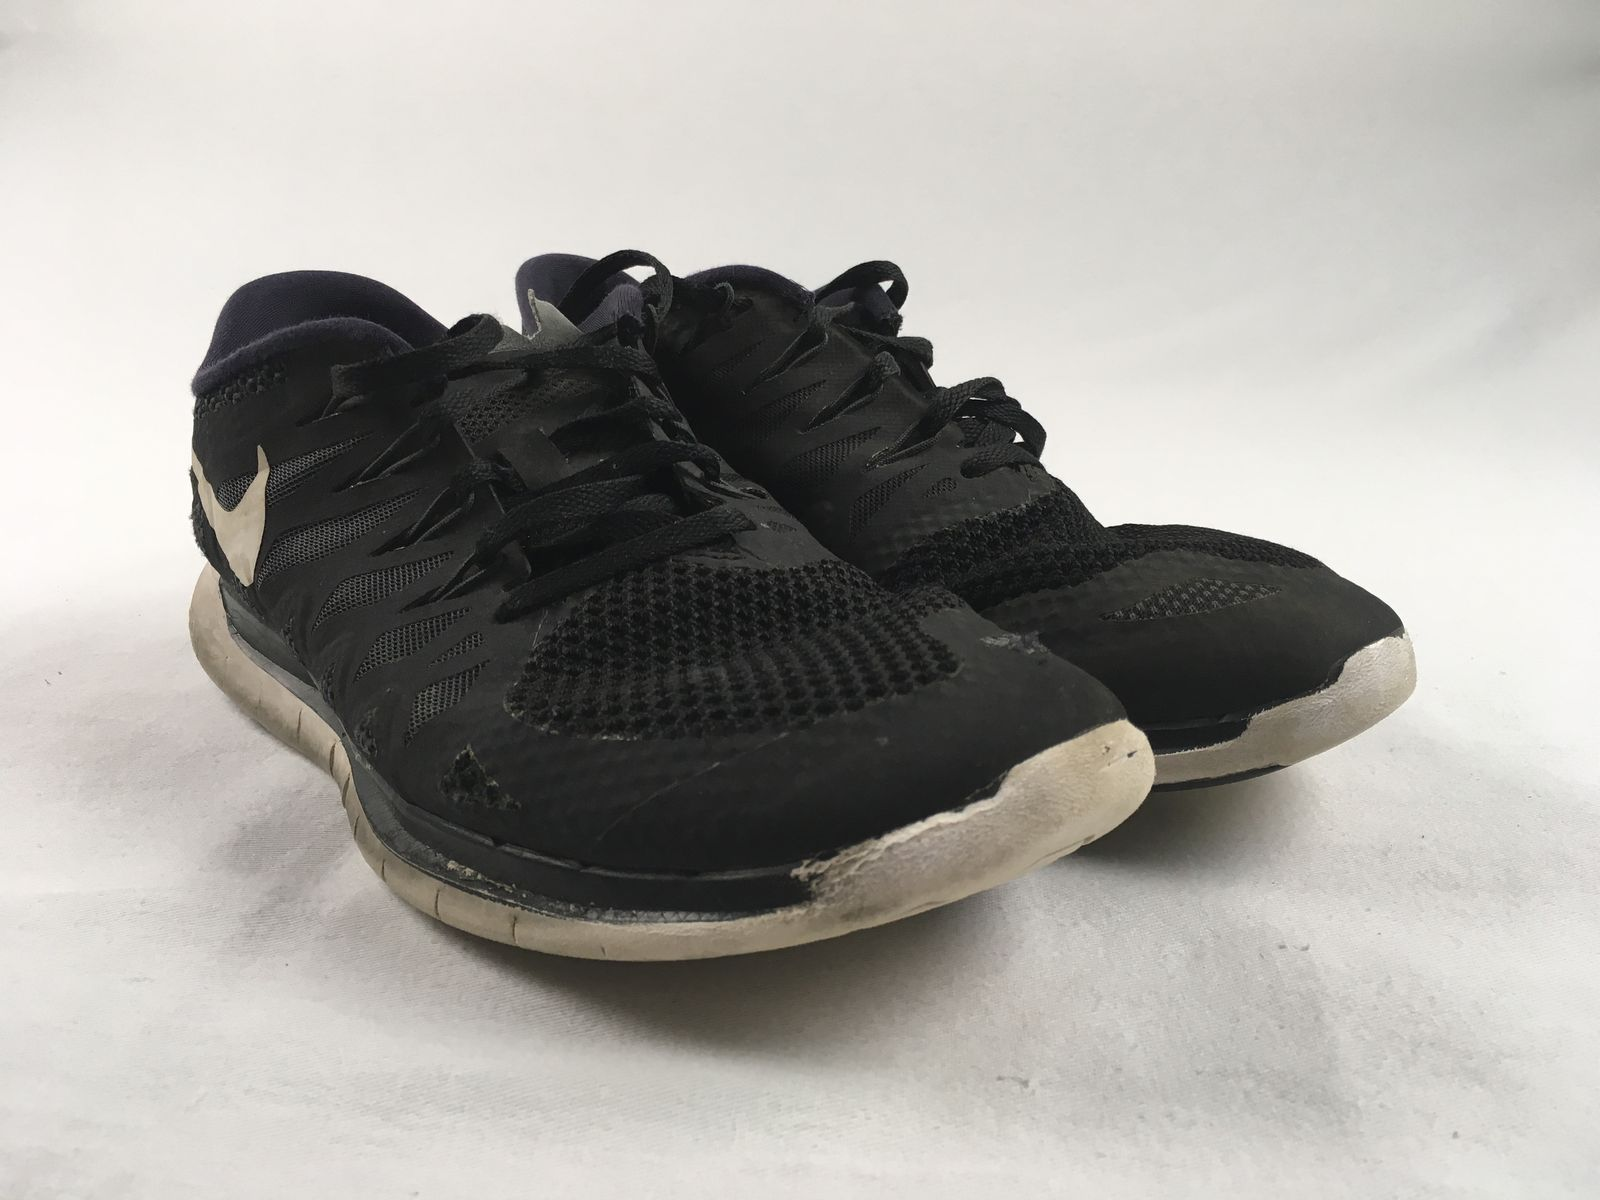 cdb9e11a598 Details about Nike Free 5.0 - Black Running